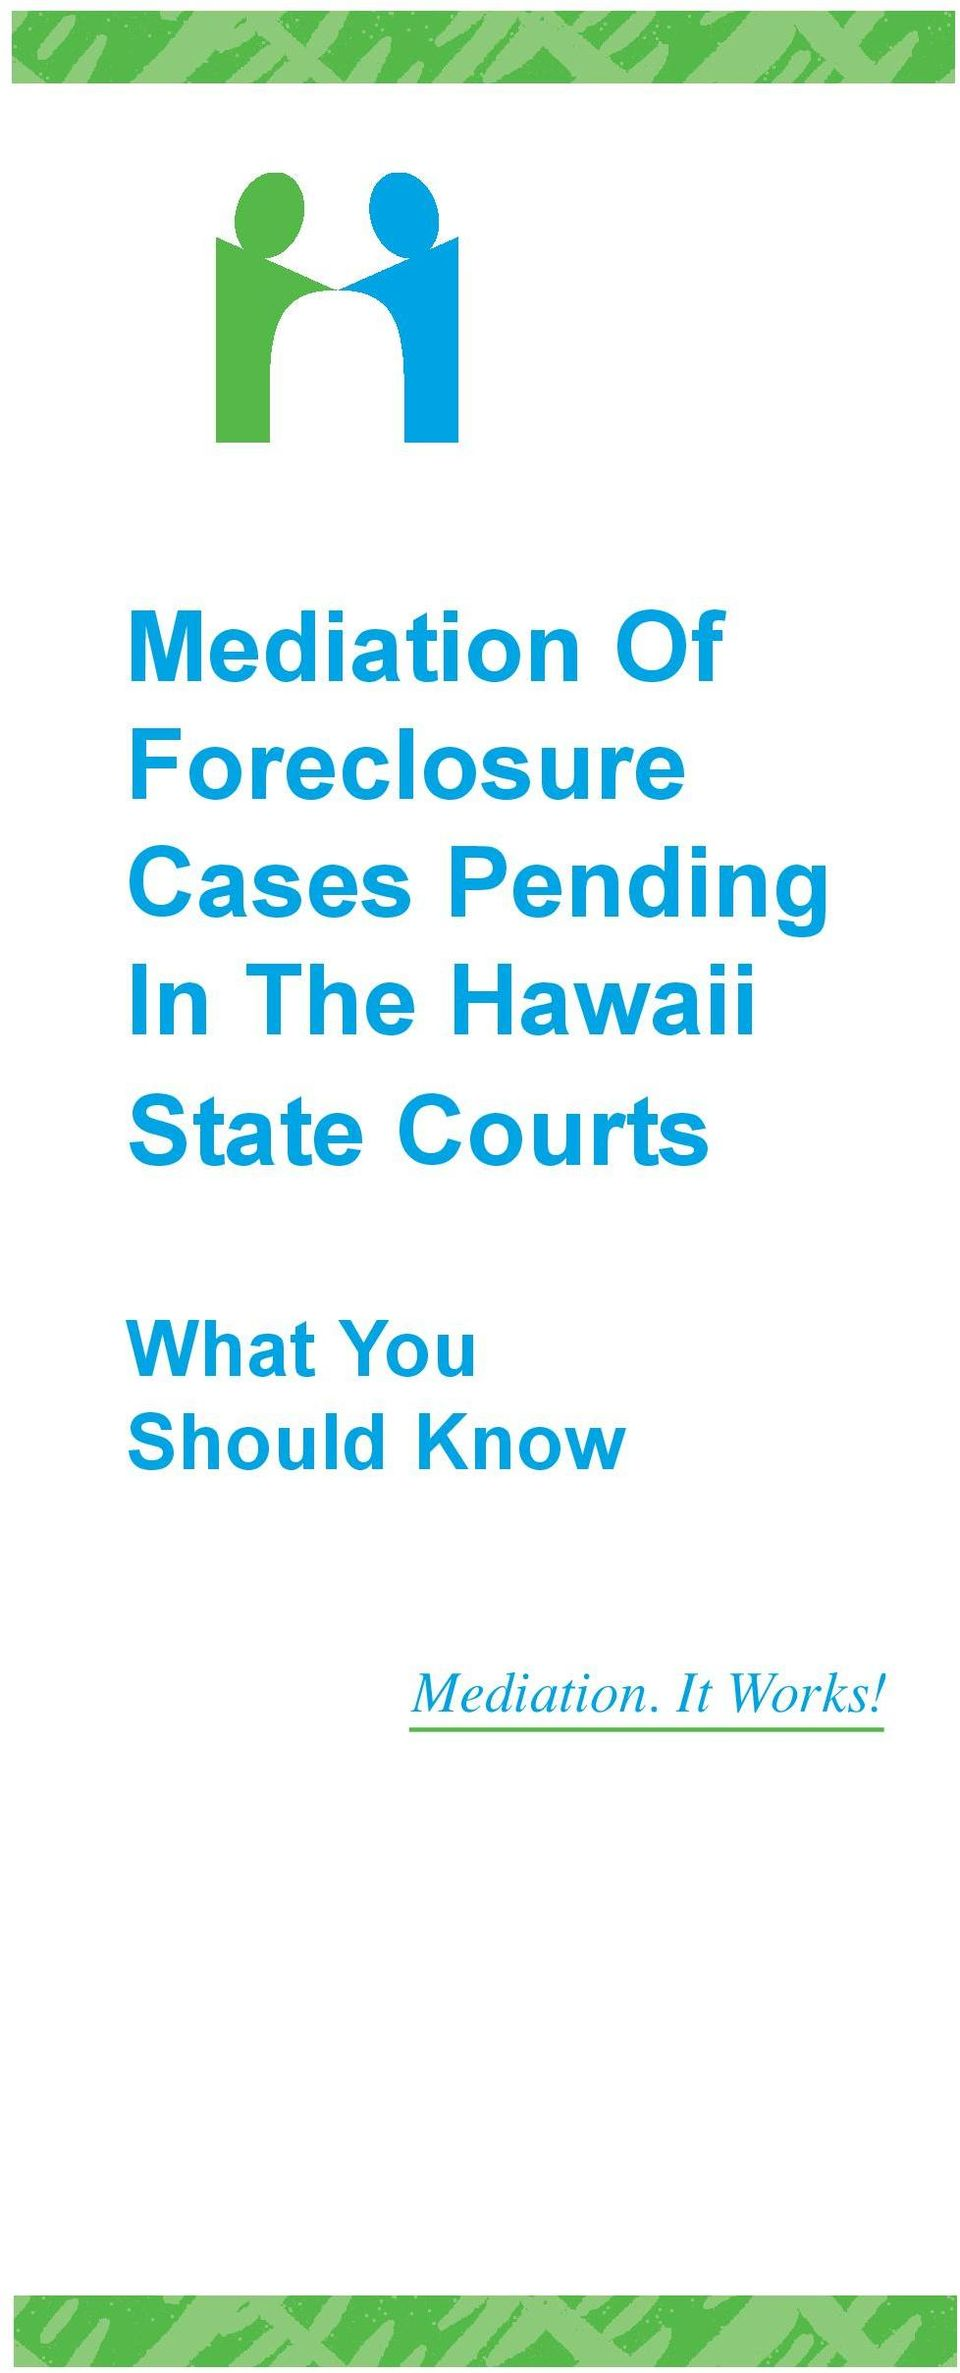 Hawaii State Courts What